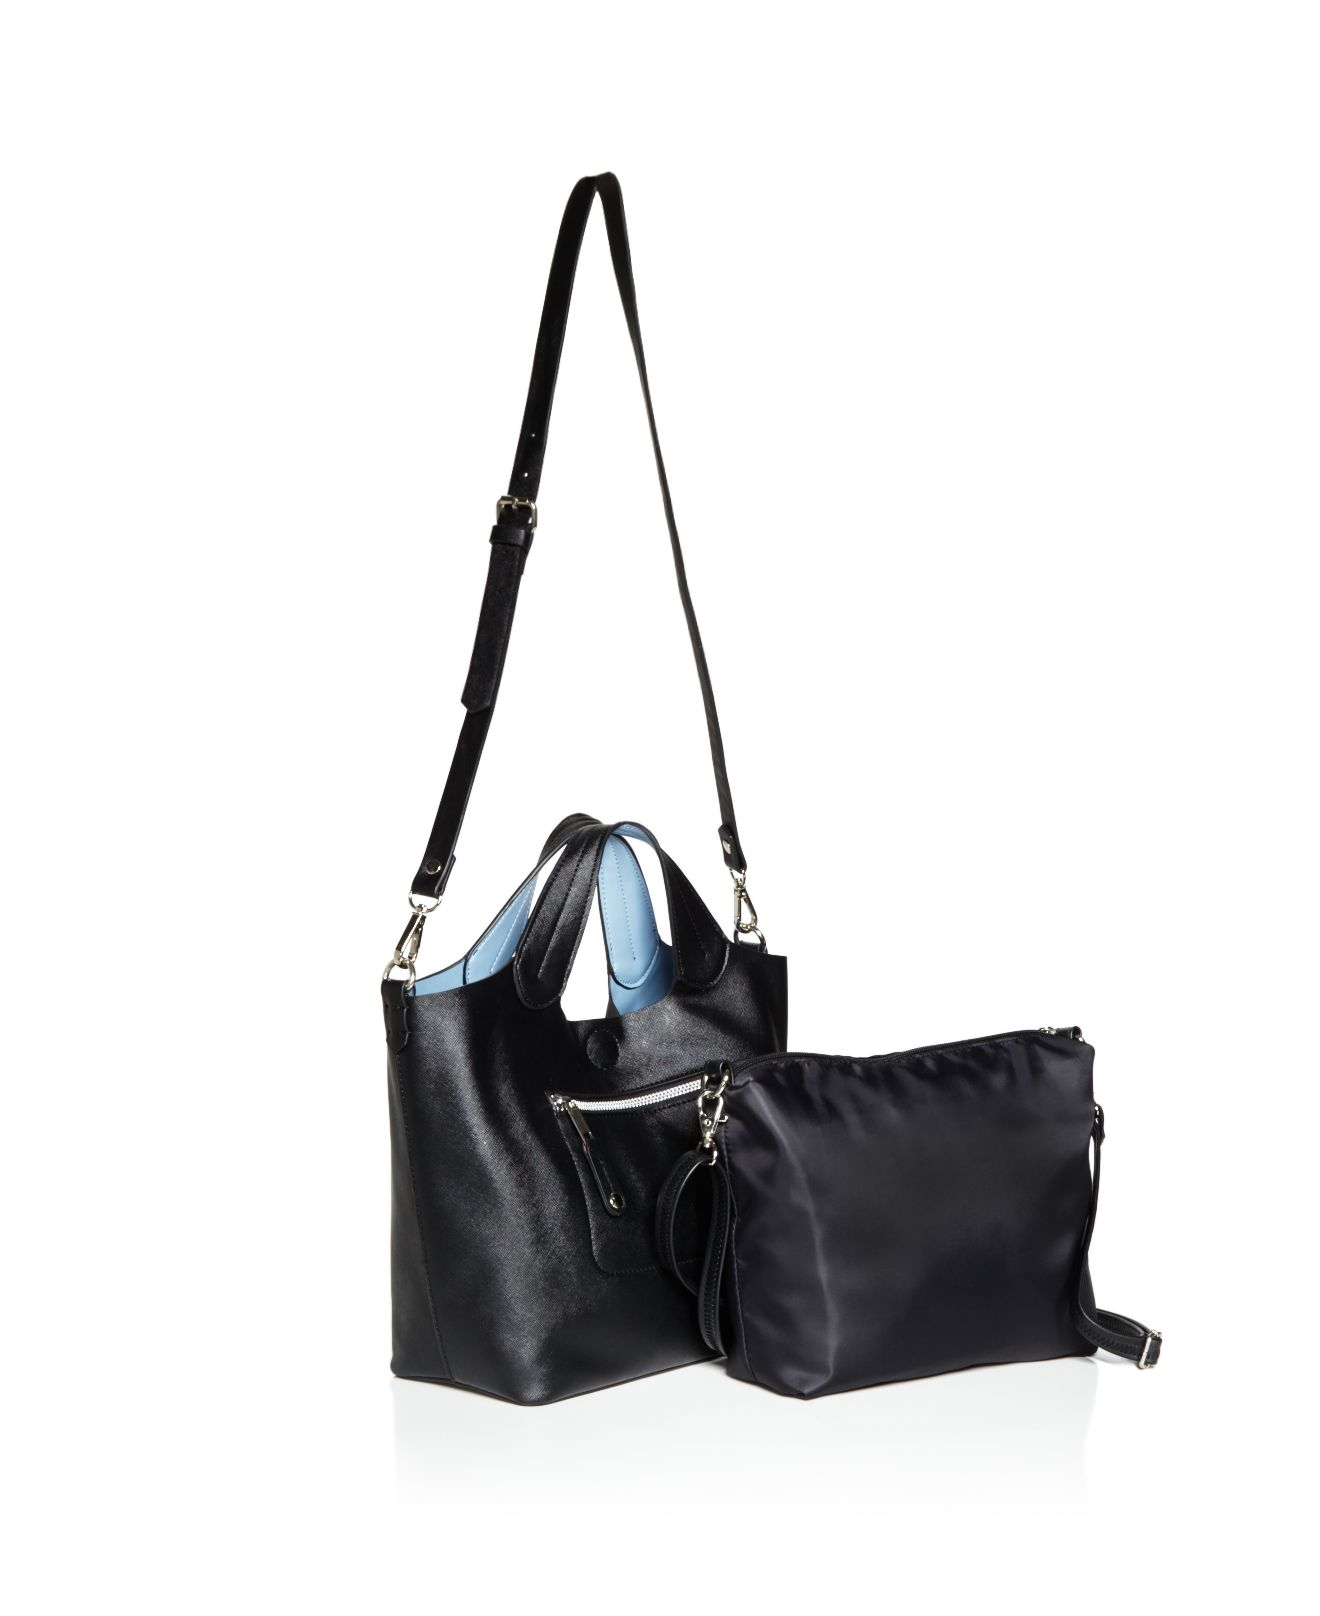 Carlos By Carlos Santana Synthetic Brooke Two-in-one Tote - Compare At $89 in Black